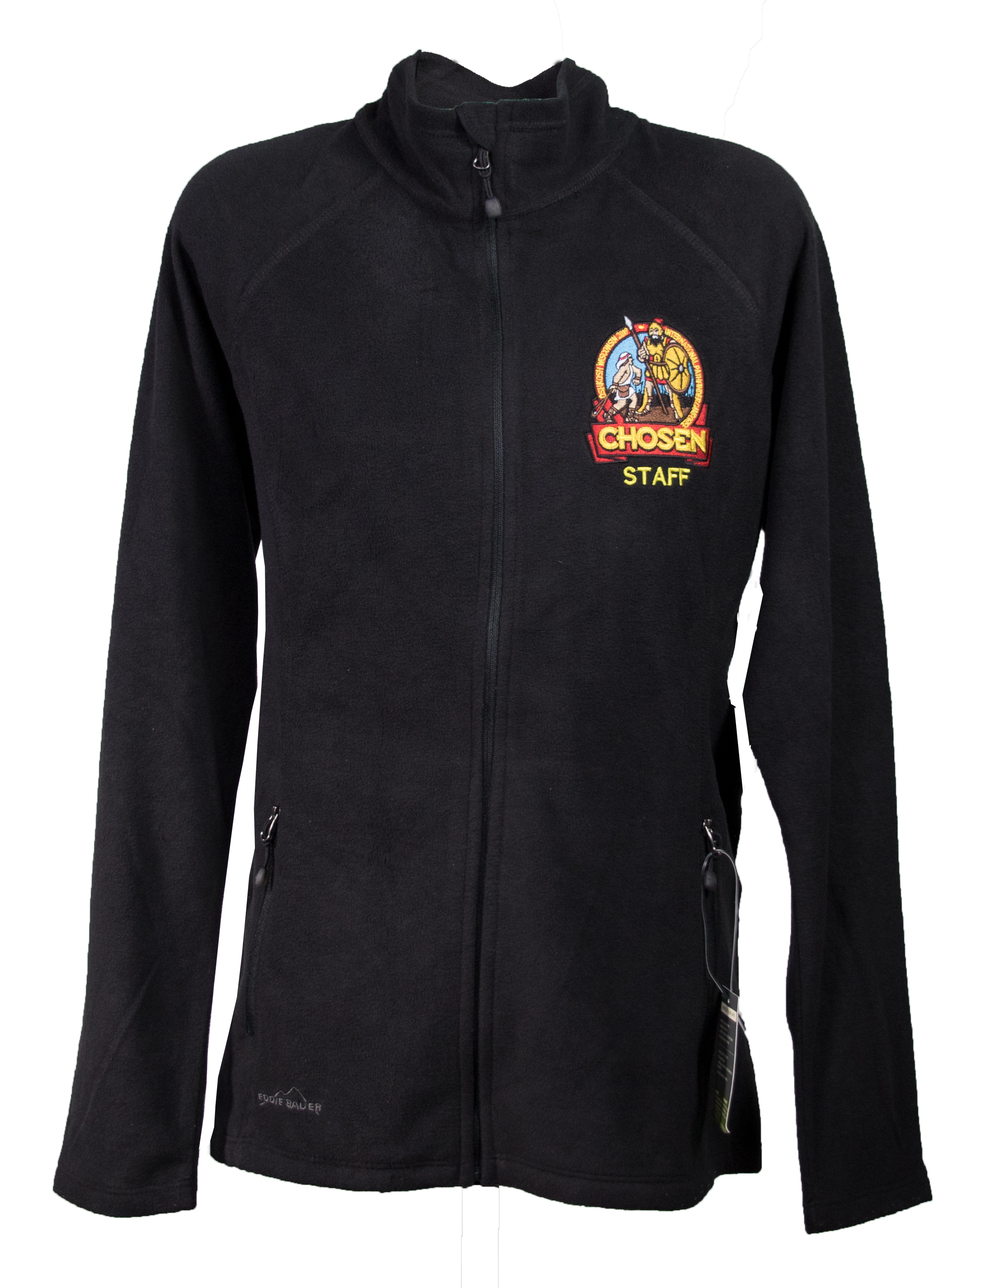 Chosen Micro Fleece full zip 'Staff' Jacket - Women's